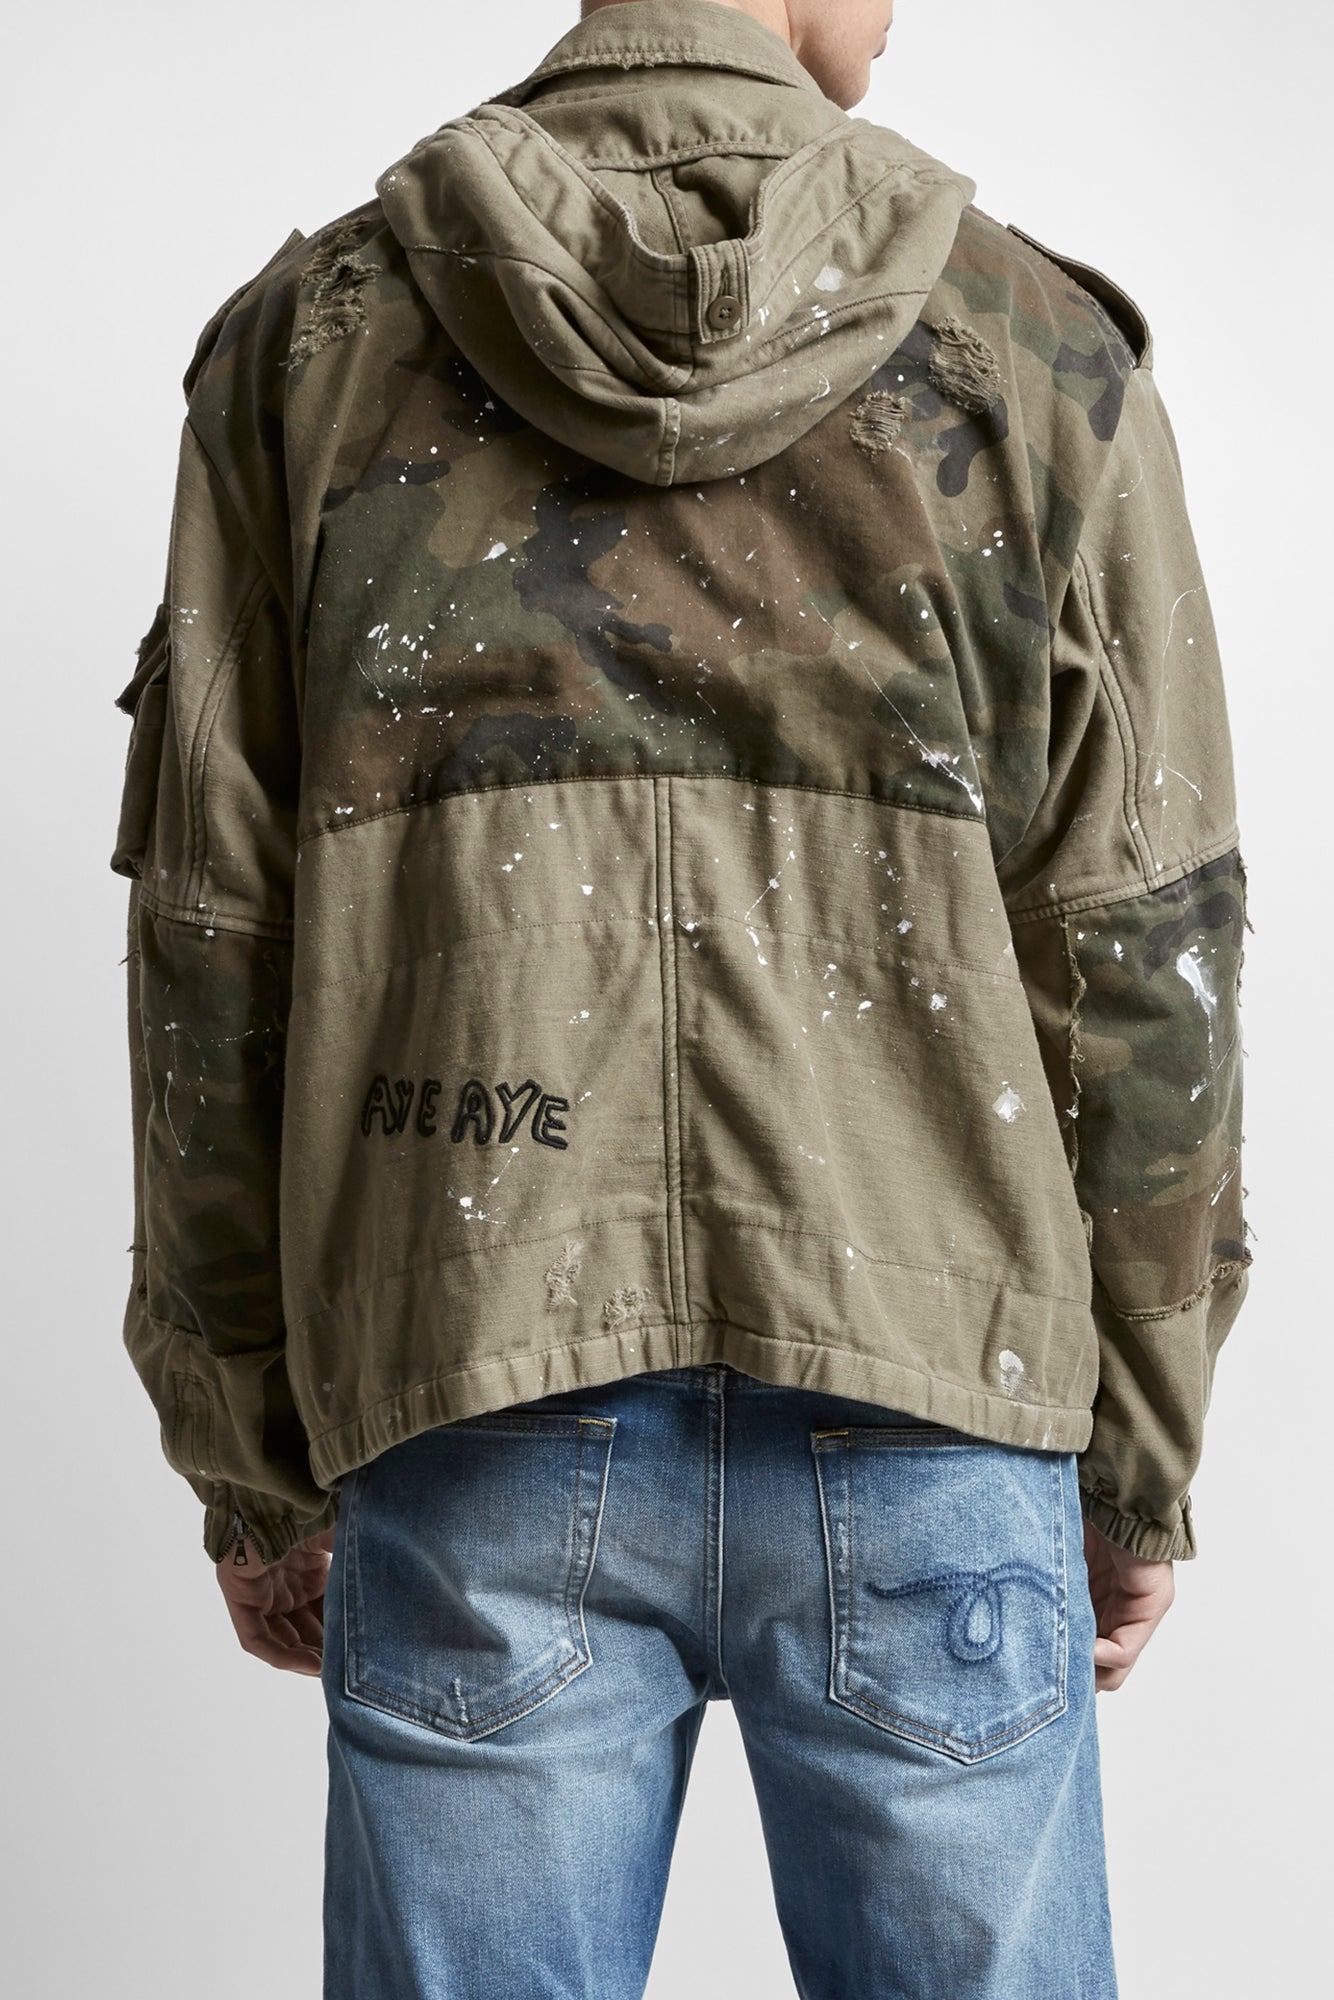 Multi Pocket Jacket - Olive with Camo